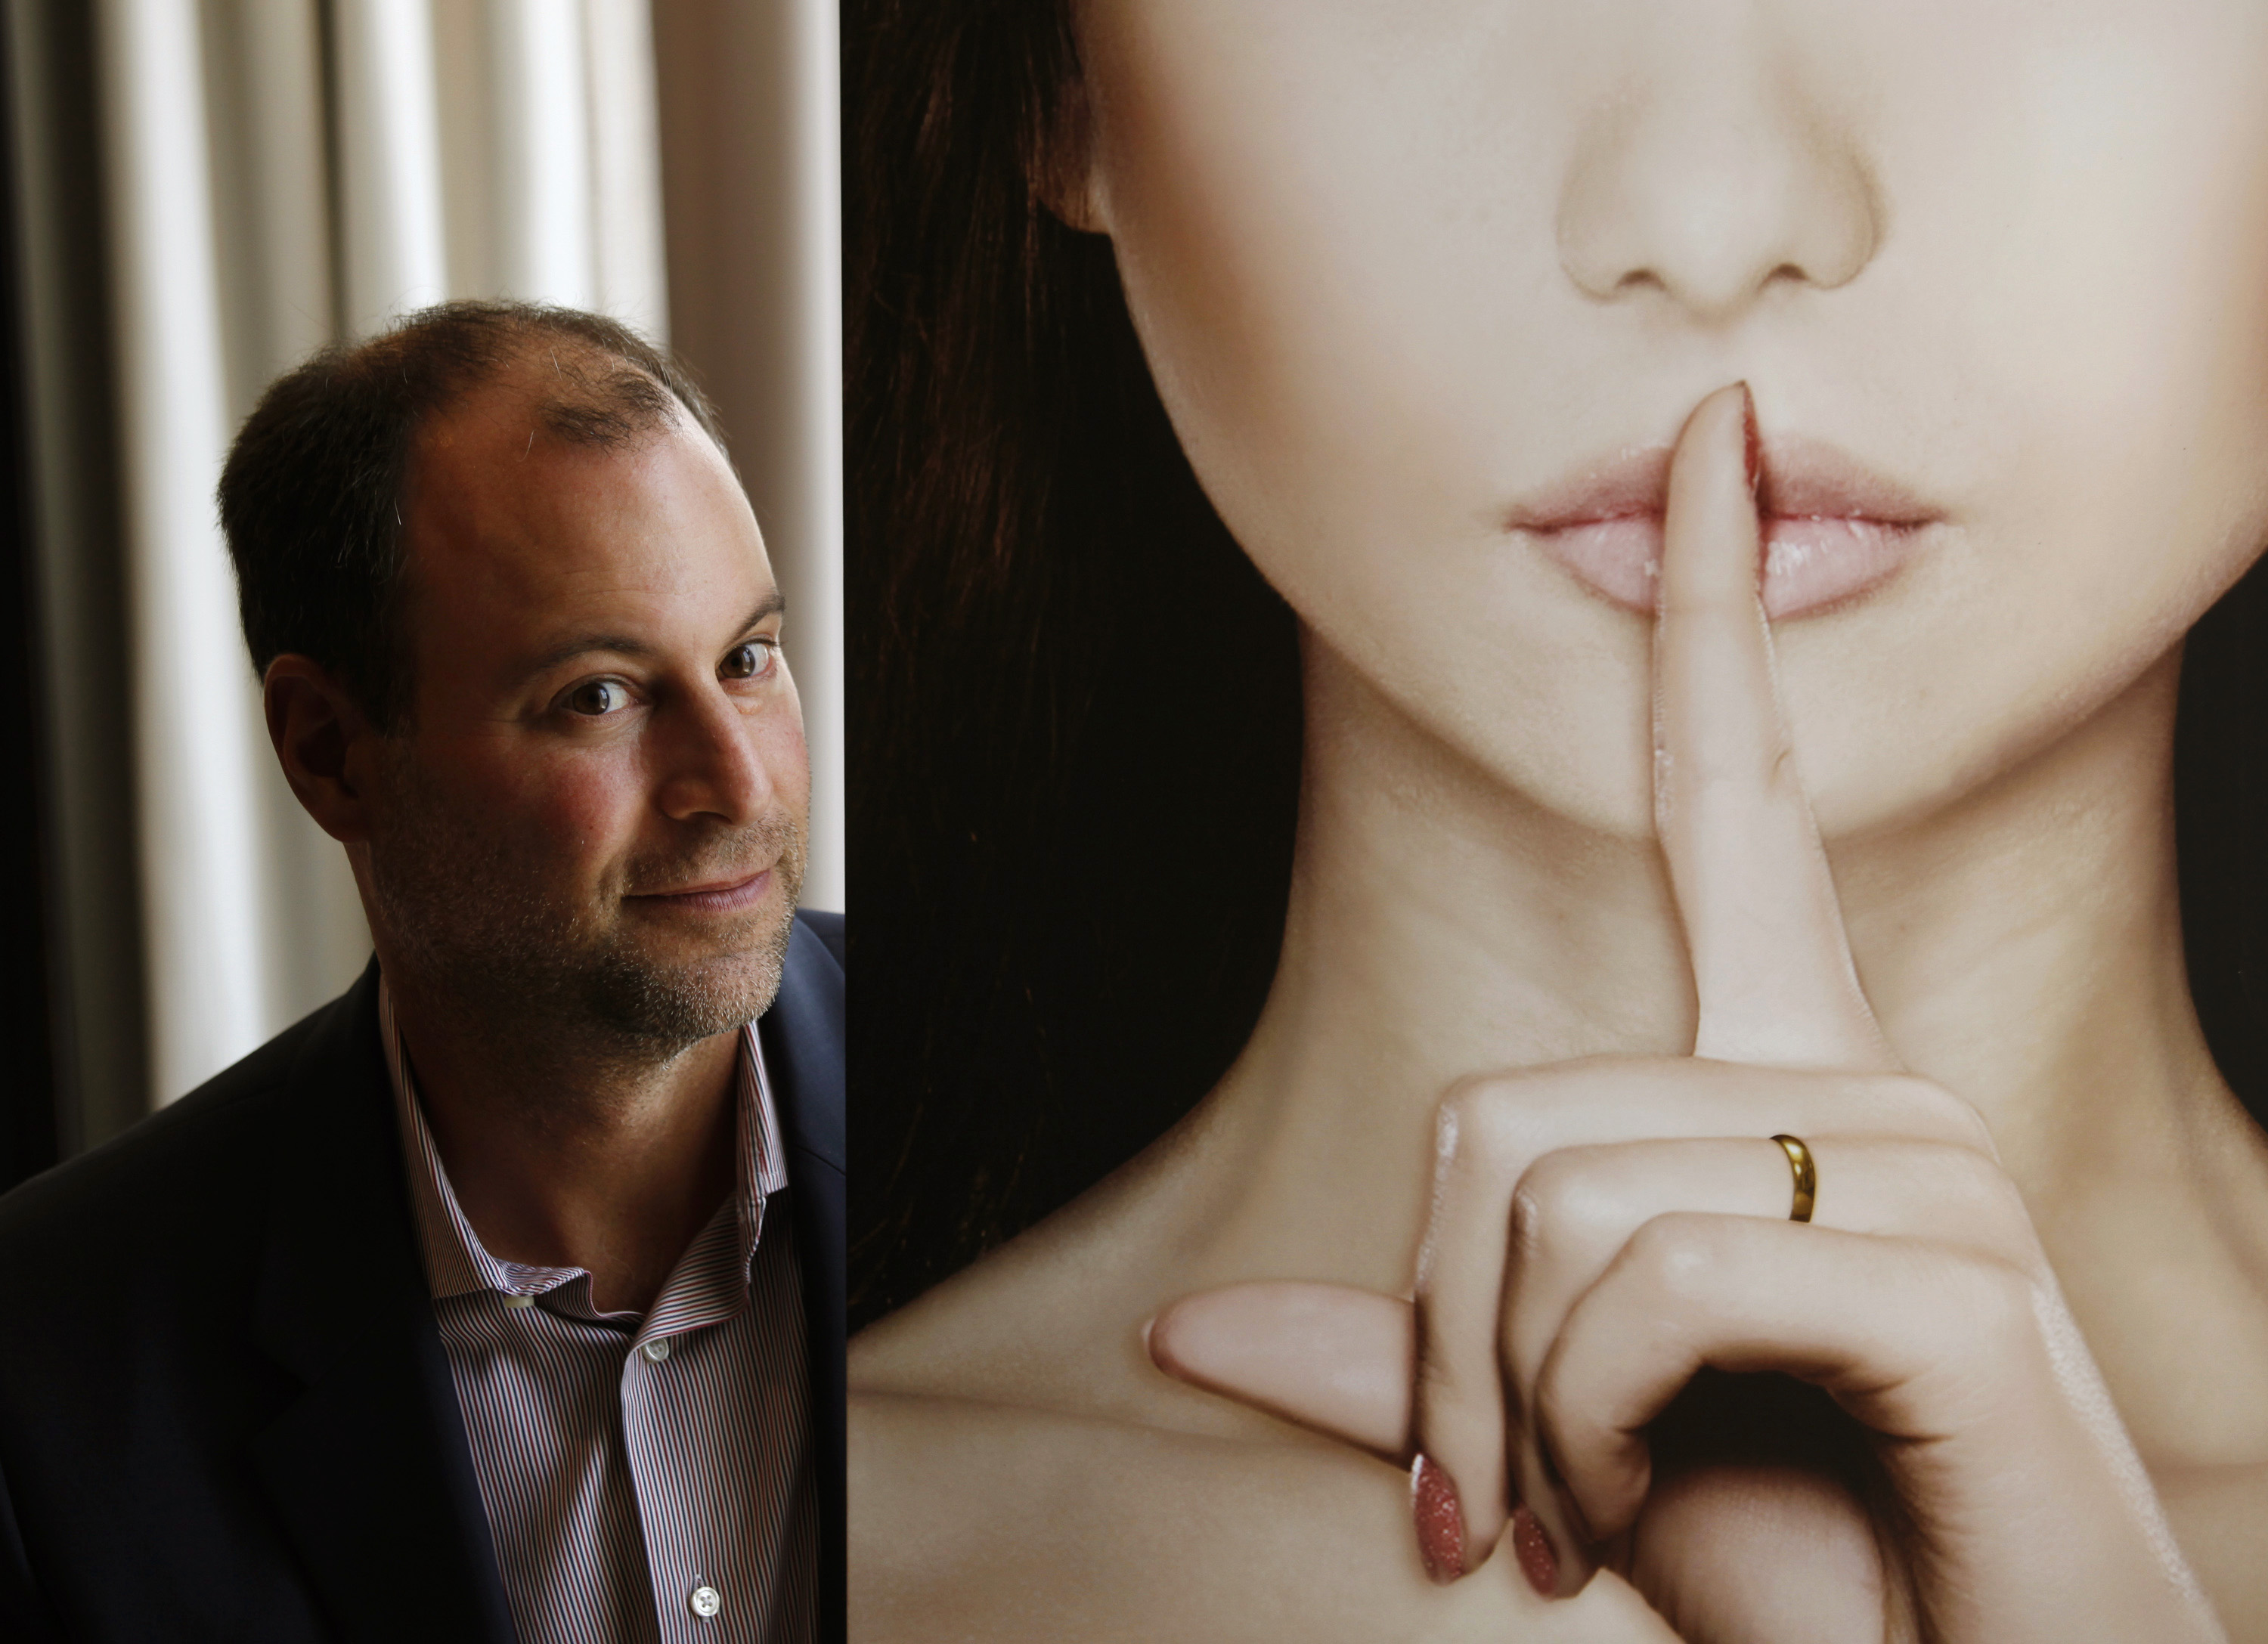 Ashley Madison founder Noel Biderman poses during an interview in Hong Kong on Aug. 28, 2013.